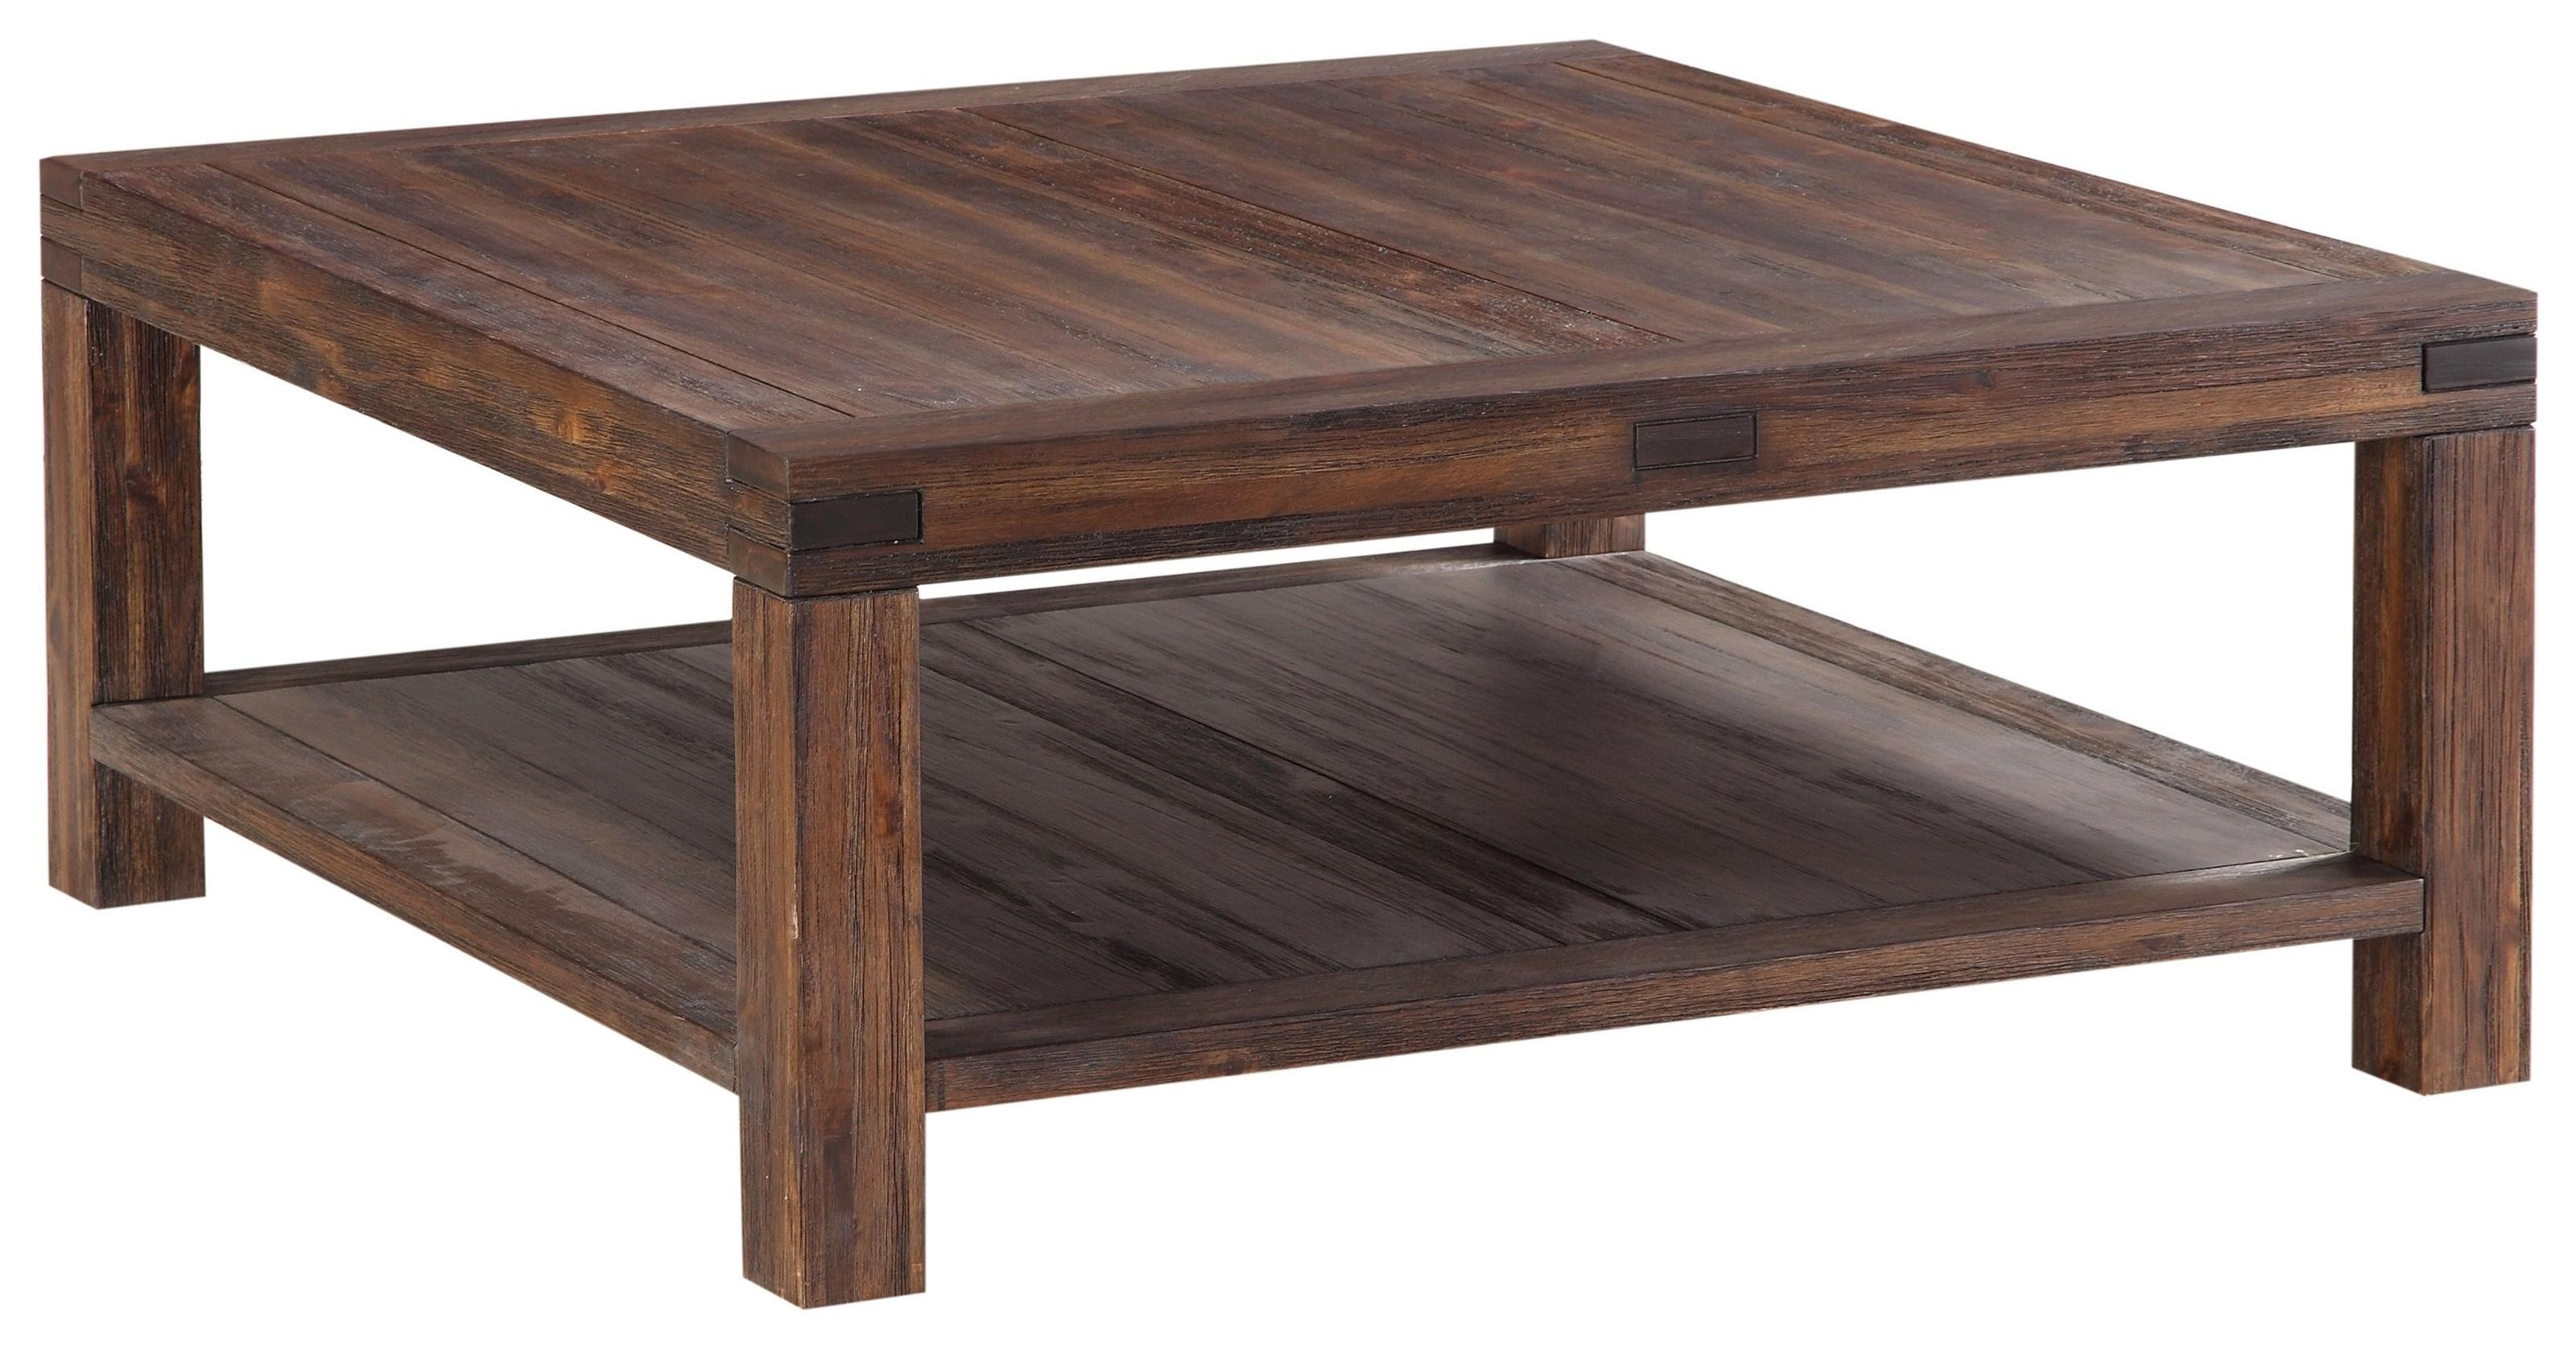 Square Coffee Table at Sadler's Home Furnishings